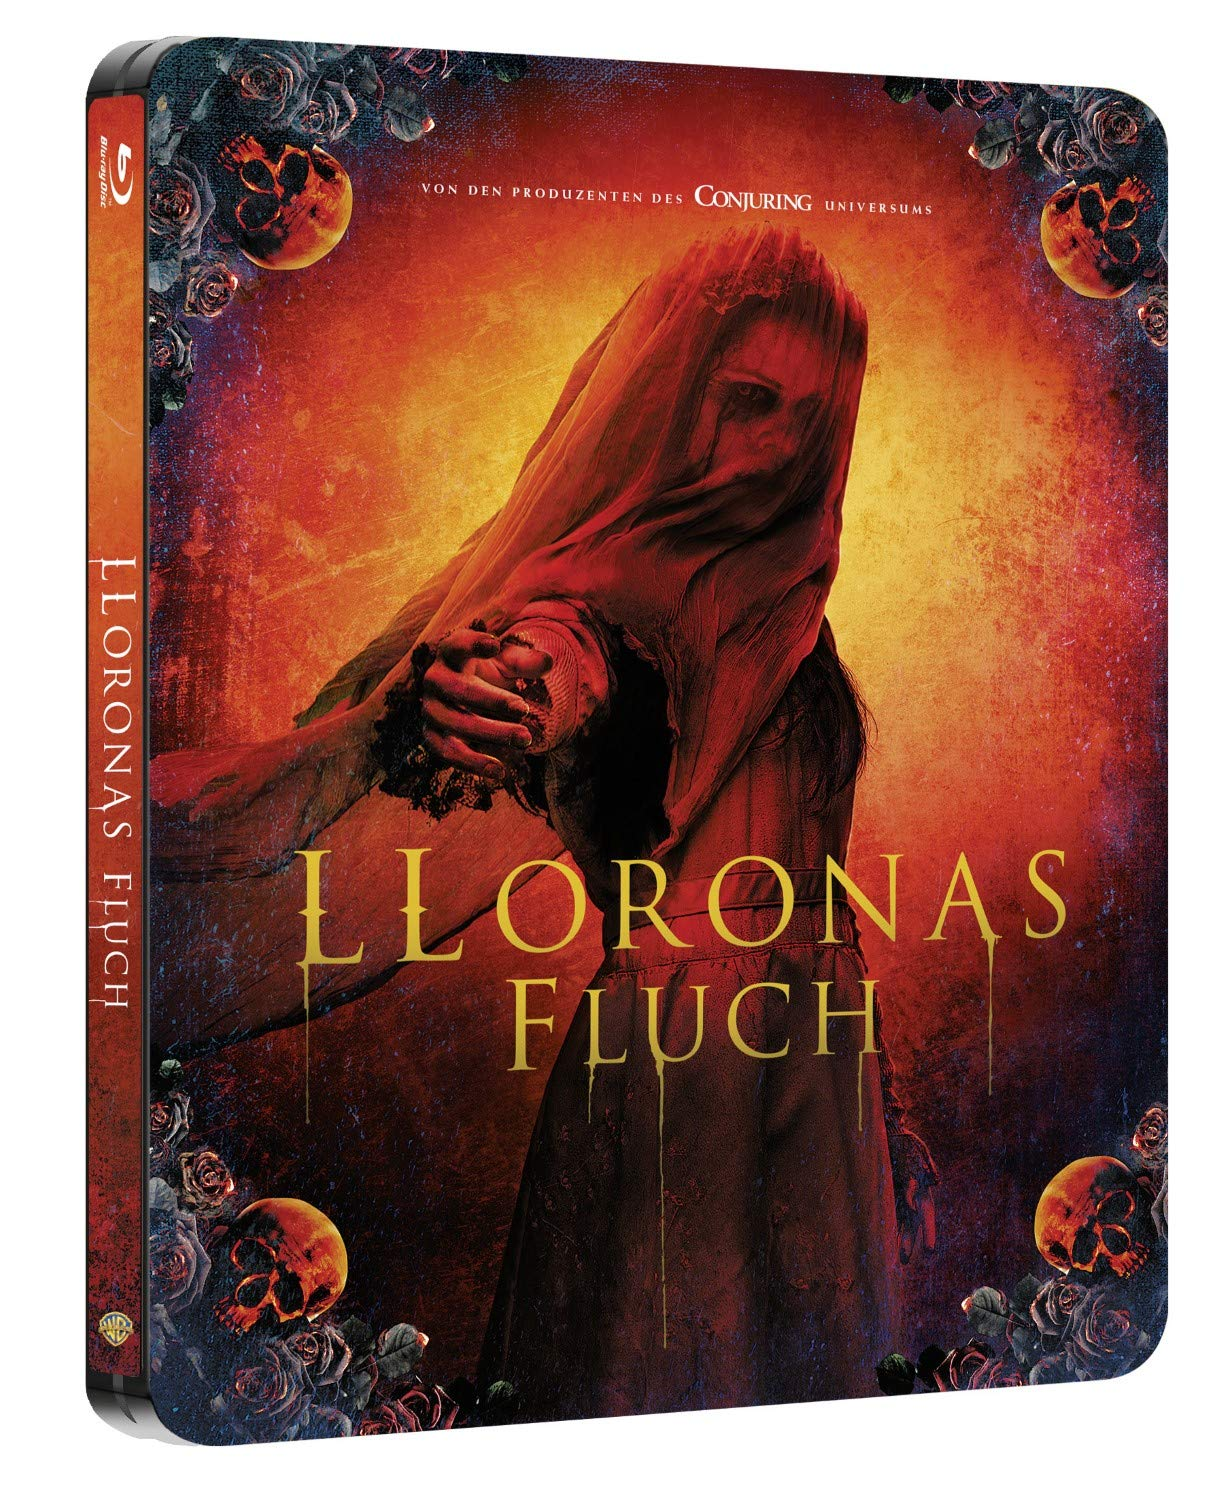 Lloronas Fluch Steelbook Blu ray 2D Limited Edition: Amazon